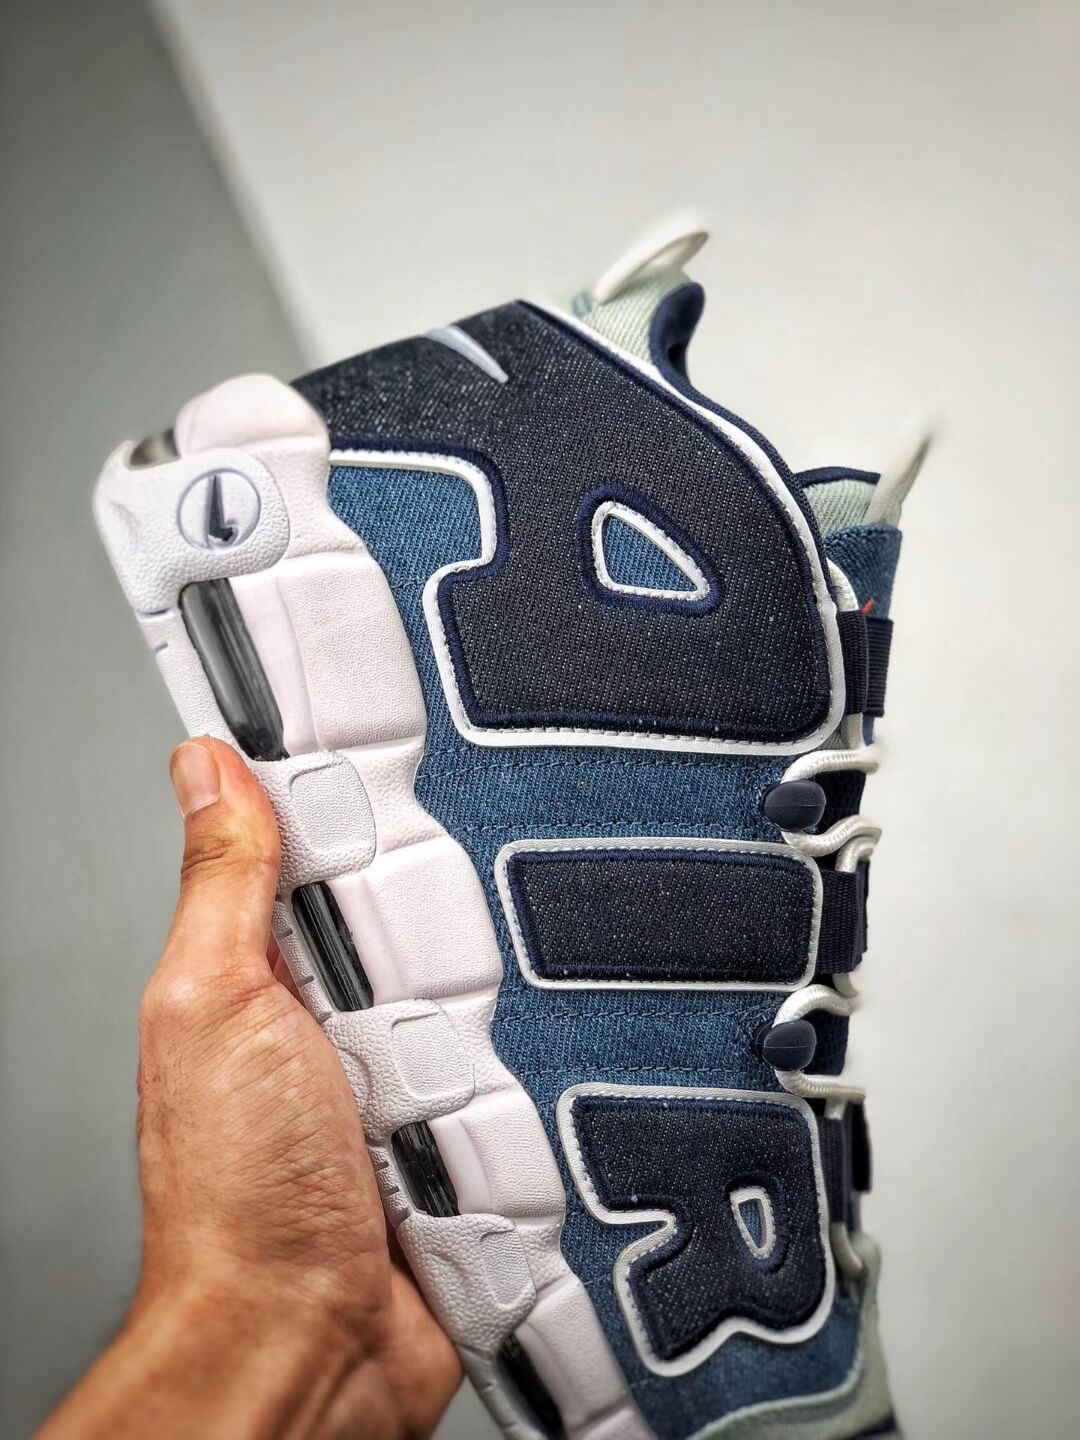 The Nike Air More Uptempo 96 Denim Sneaker Blue jean Fabric Style Large AIR Scottie Pippen Repshoes 05